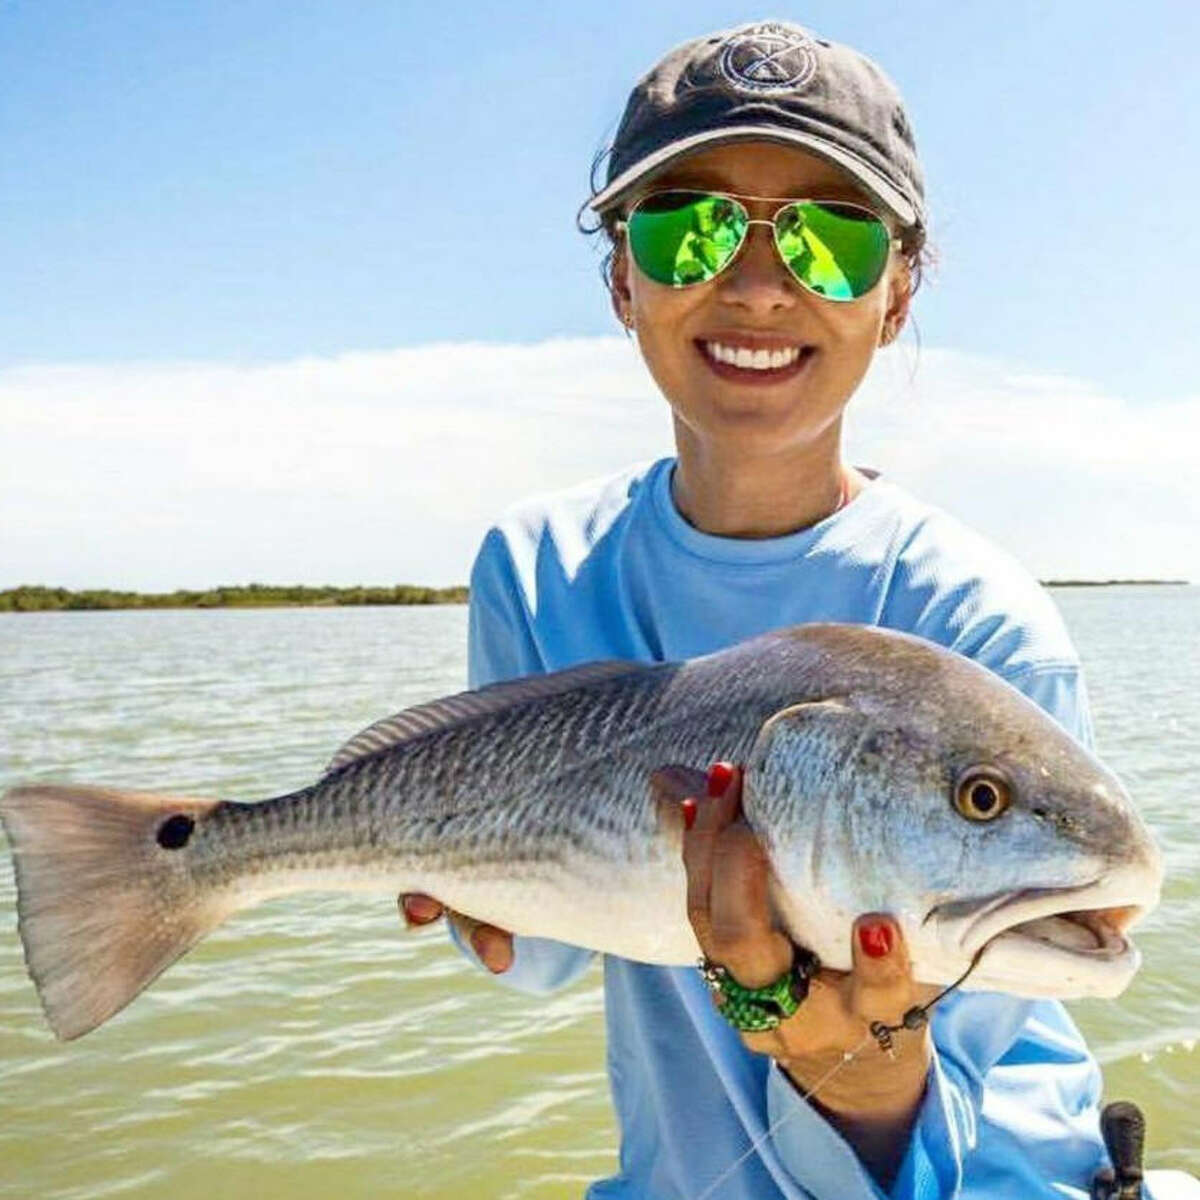 Over the past three years, the South Texas Fishing Association has been collecting thousands of photos of Texans showing off their best catches.